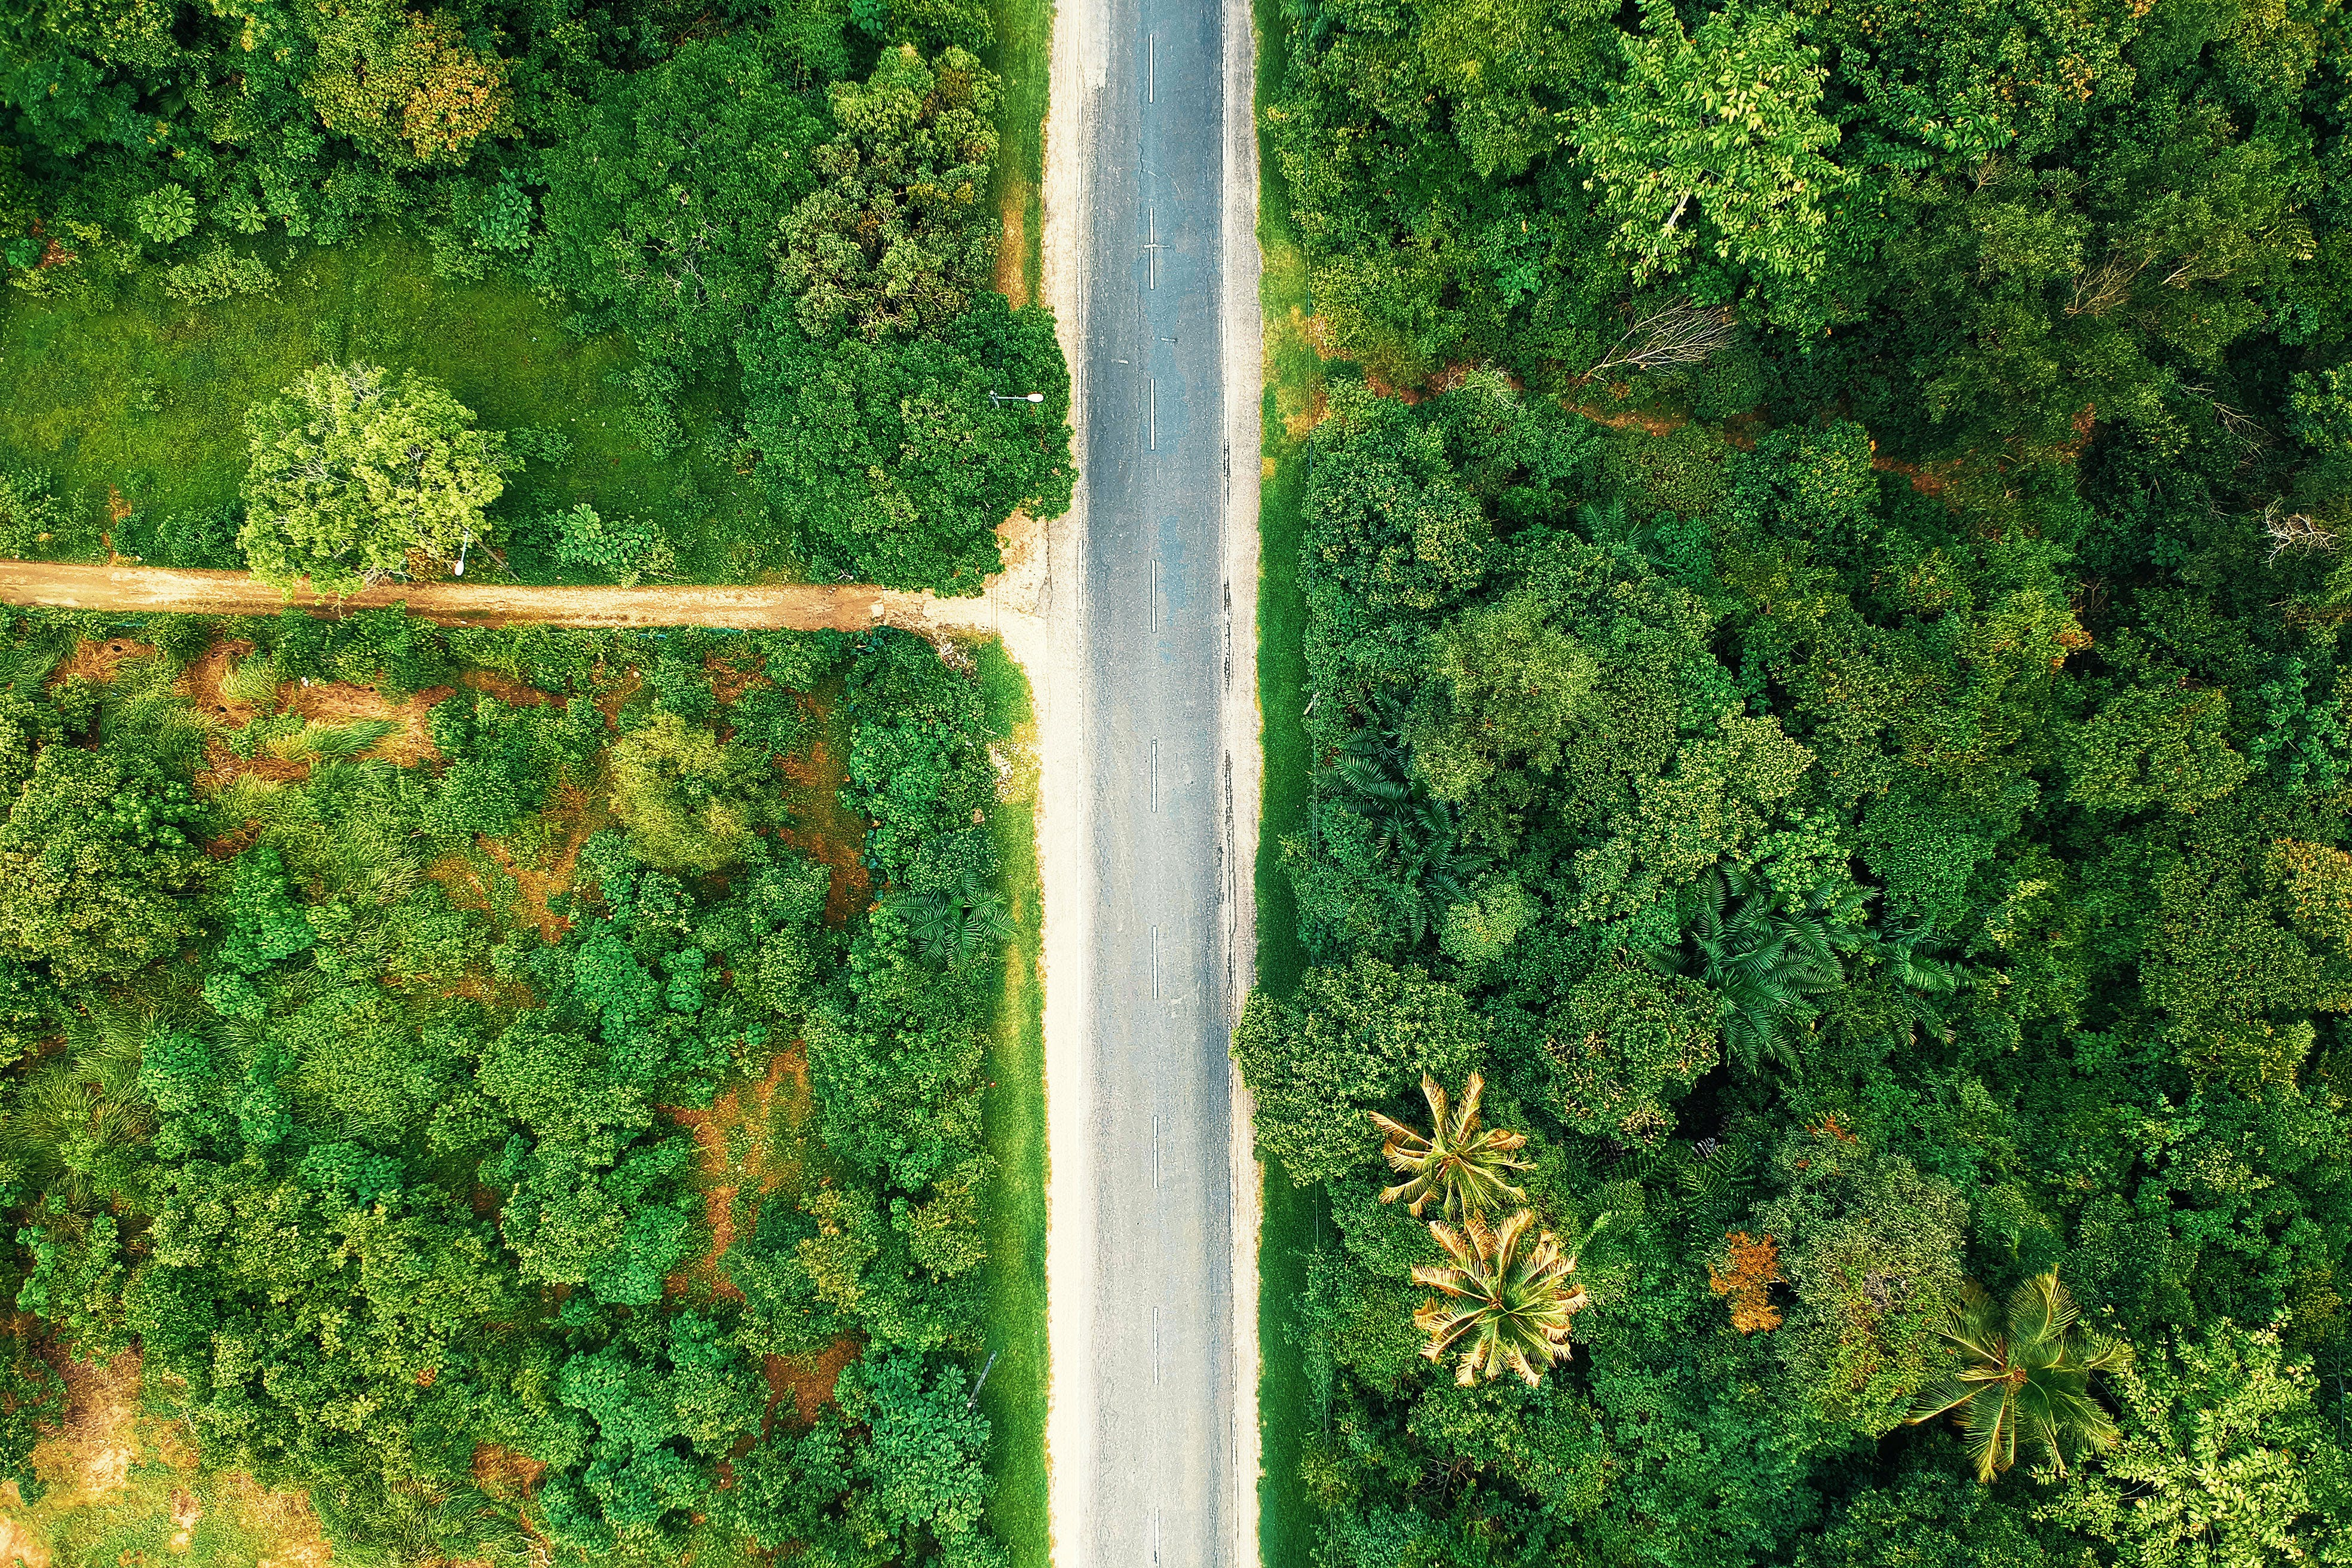 Bird's-eye View Photography of Road Between Trees